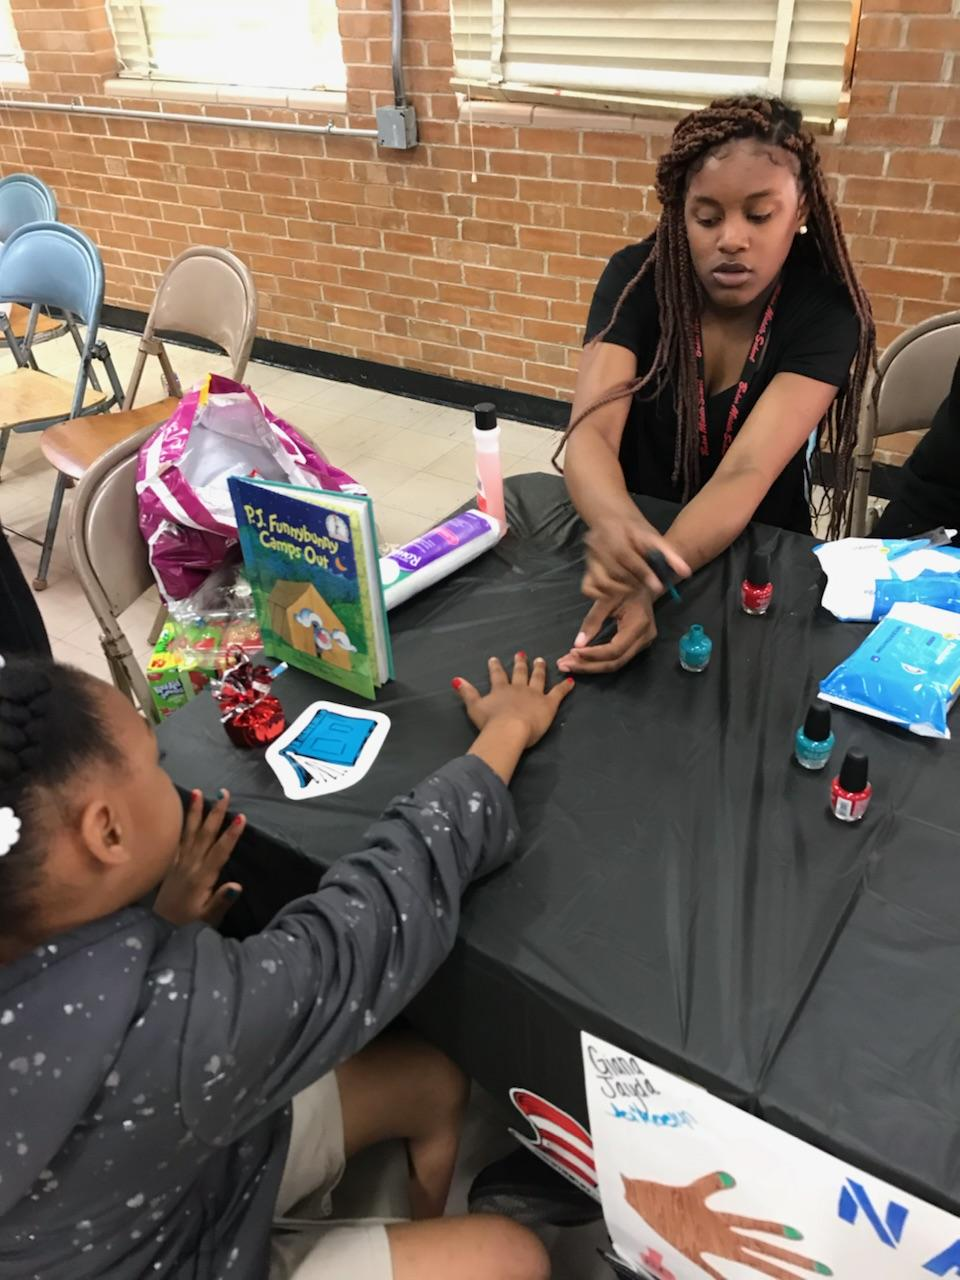 Photo from Super Scientist Day, held at Baker Middle School on March 2, 2018